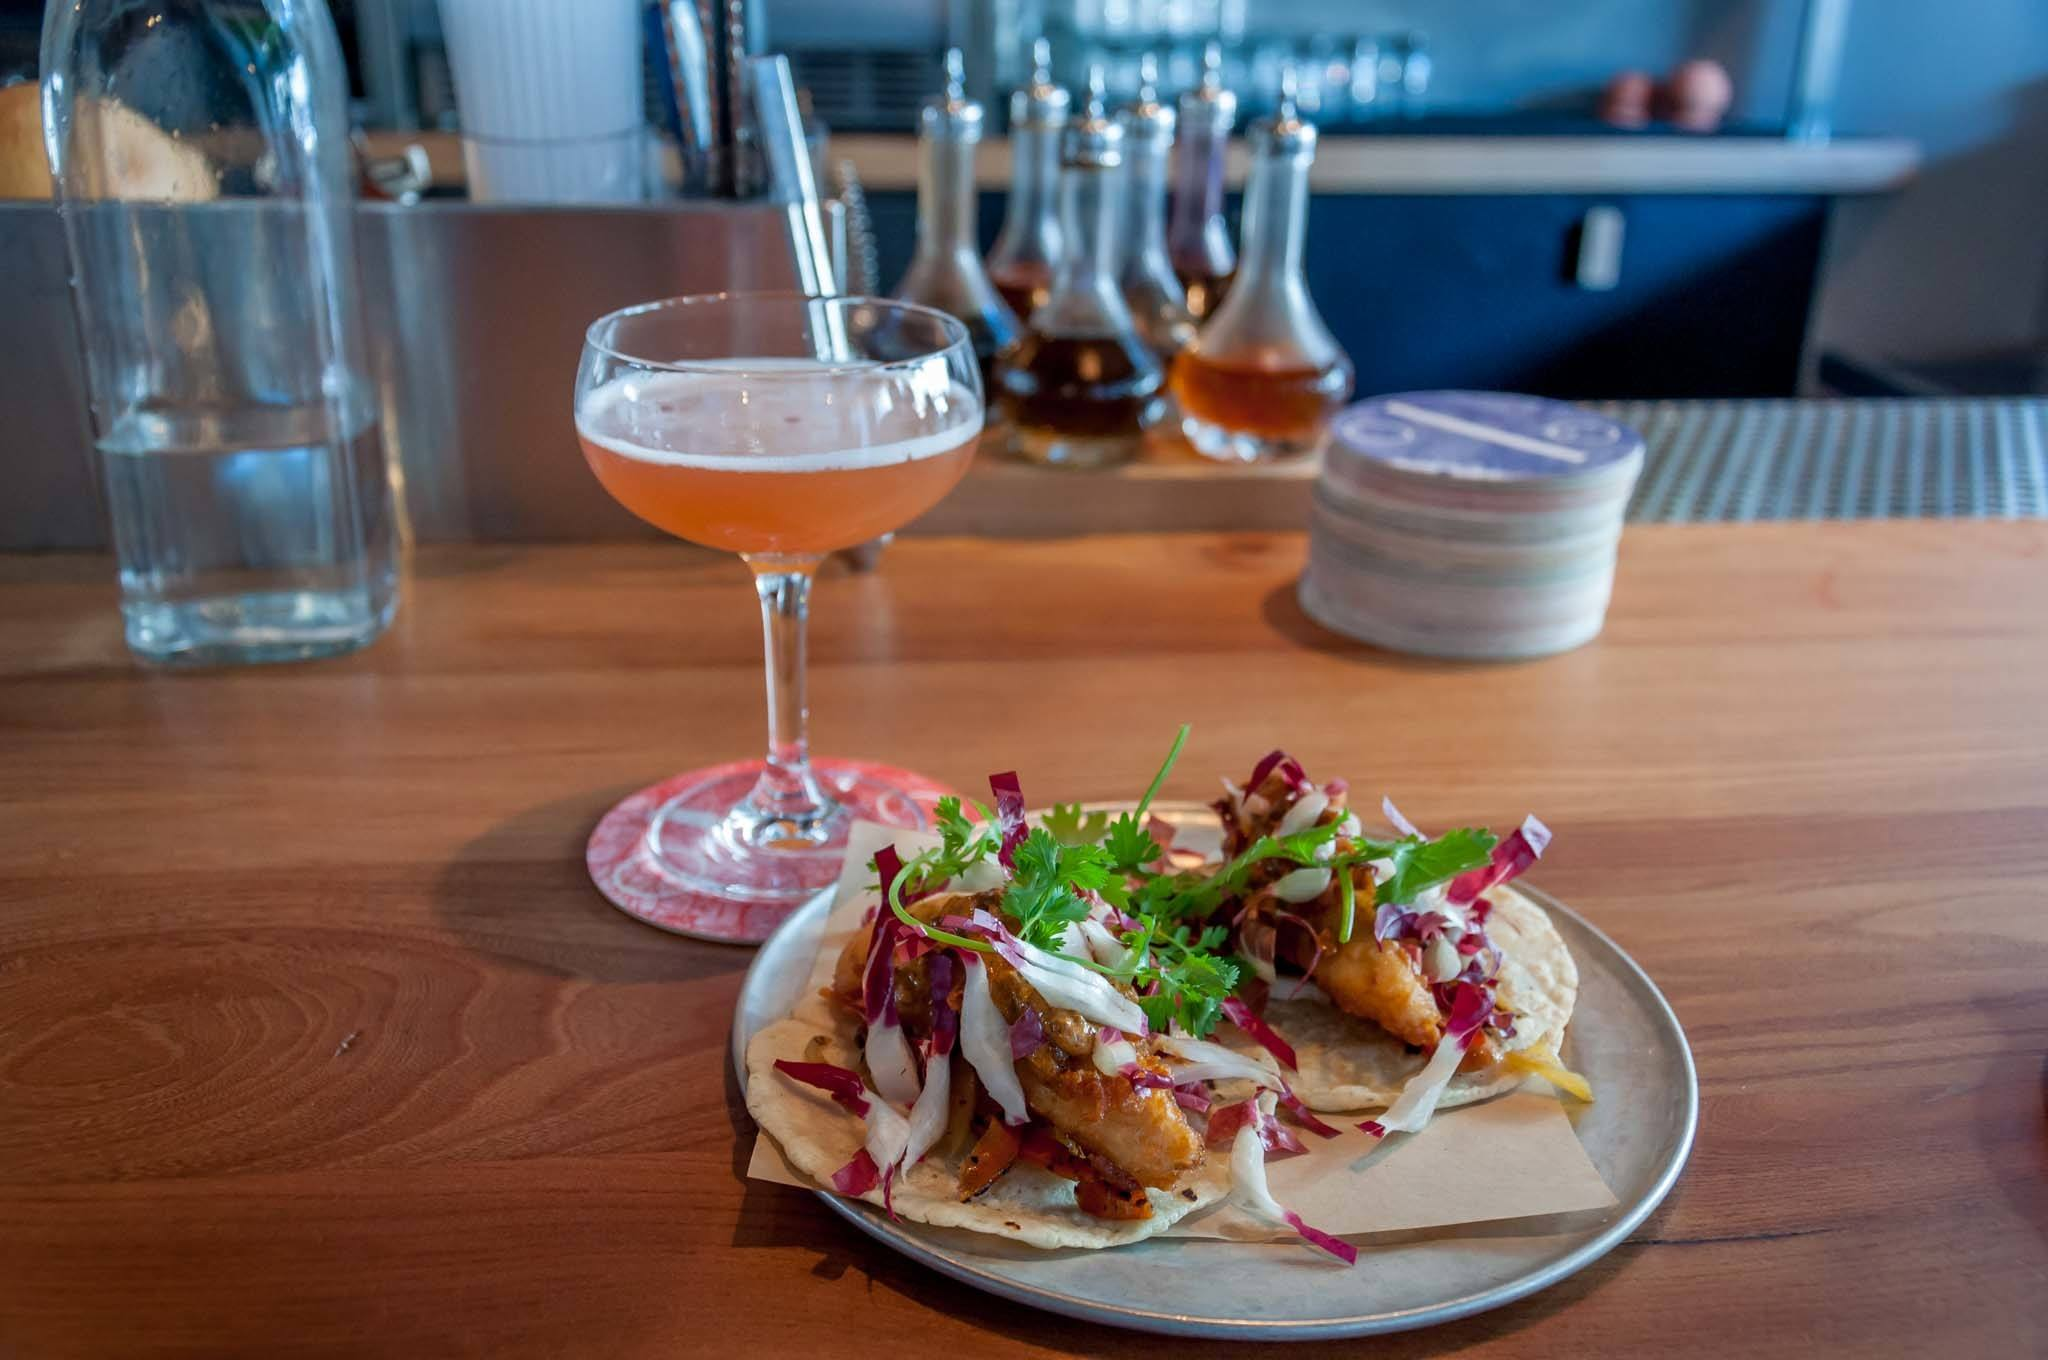 Cocktail and fish tacos on a table